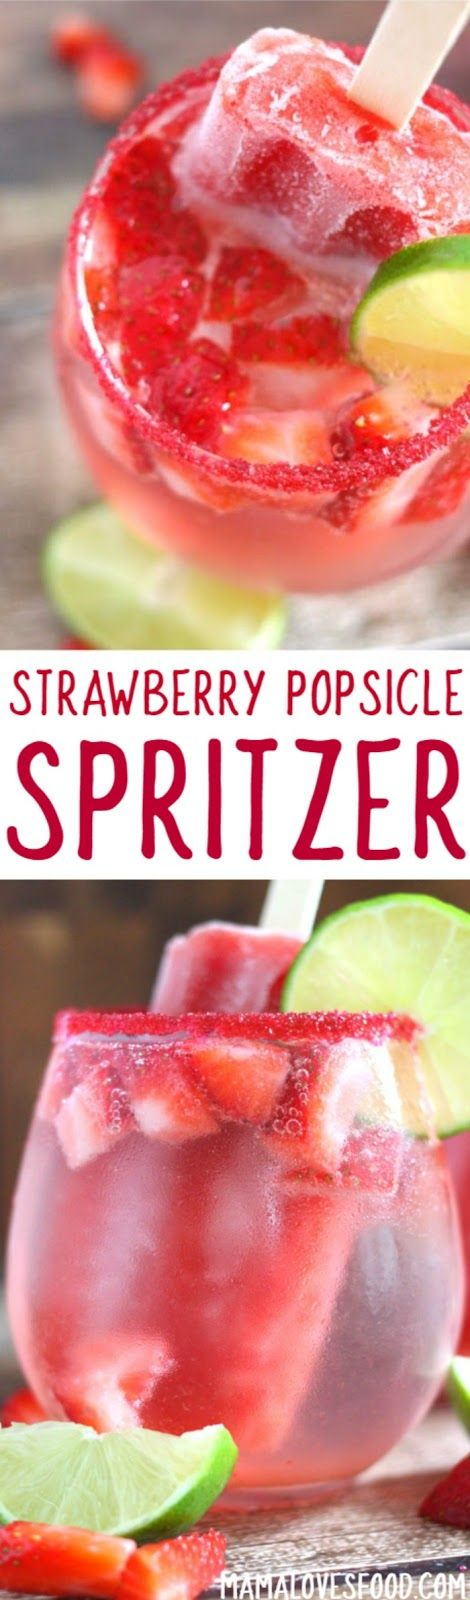 came out awesome!!! -  Strawberry Lime Popsicle Spritzer Mocktail Cocktail Recipe